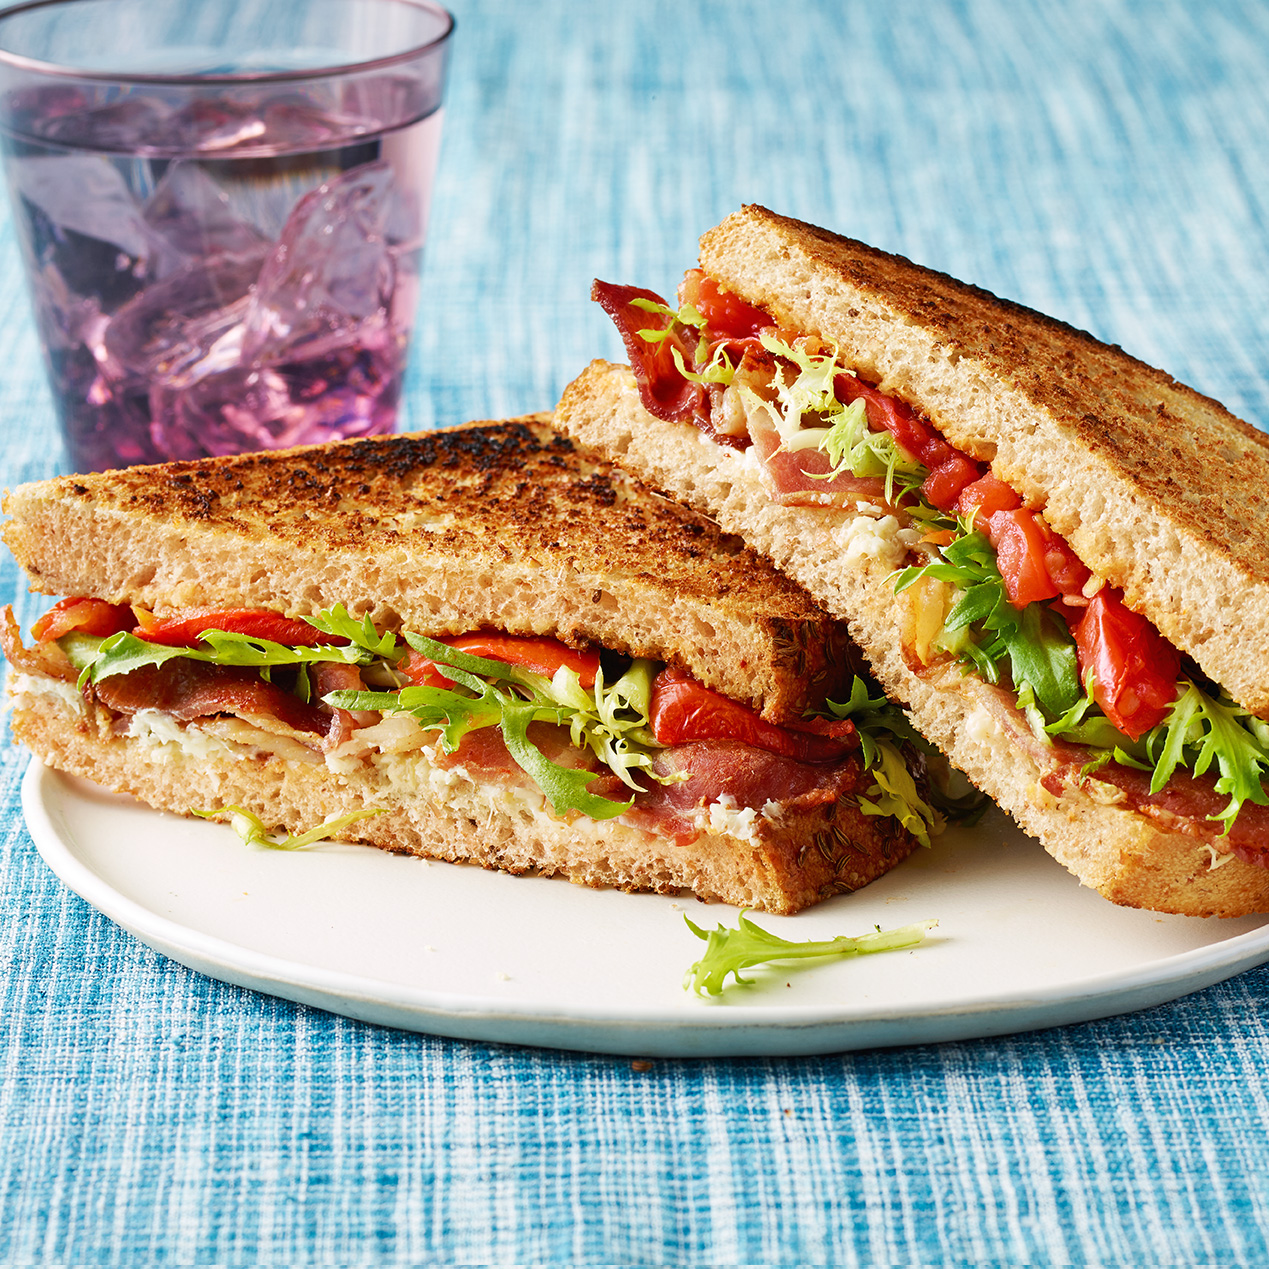 Spicy Bacon Sammies